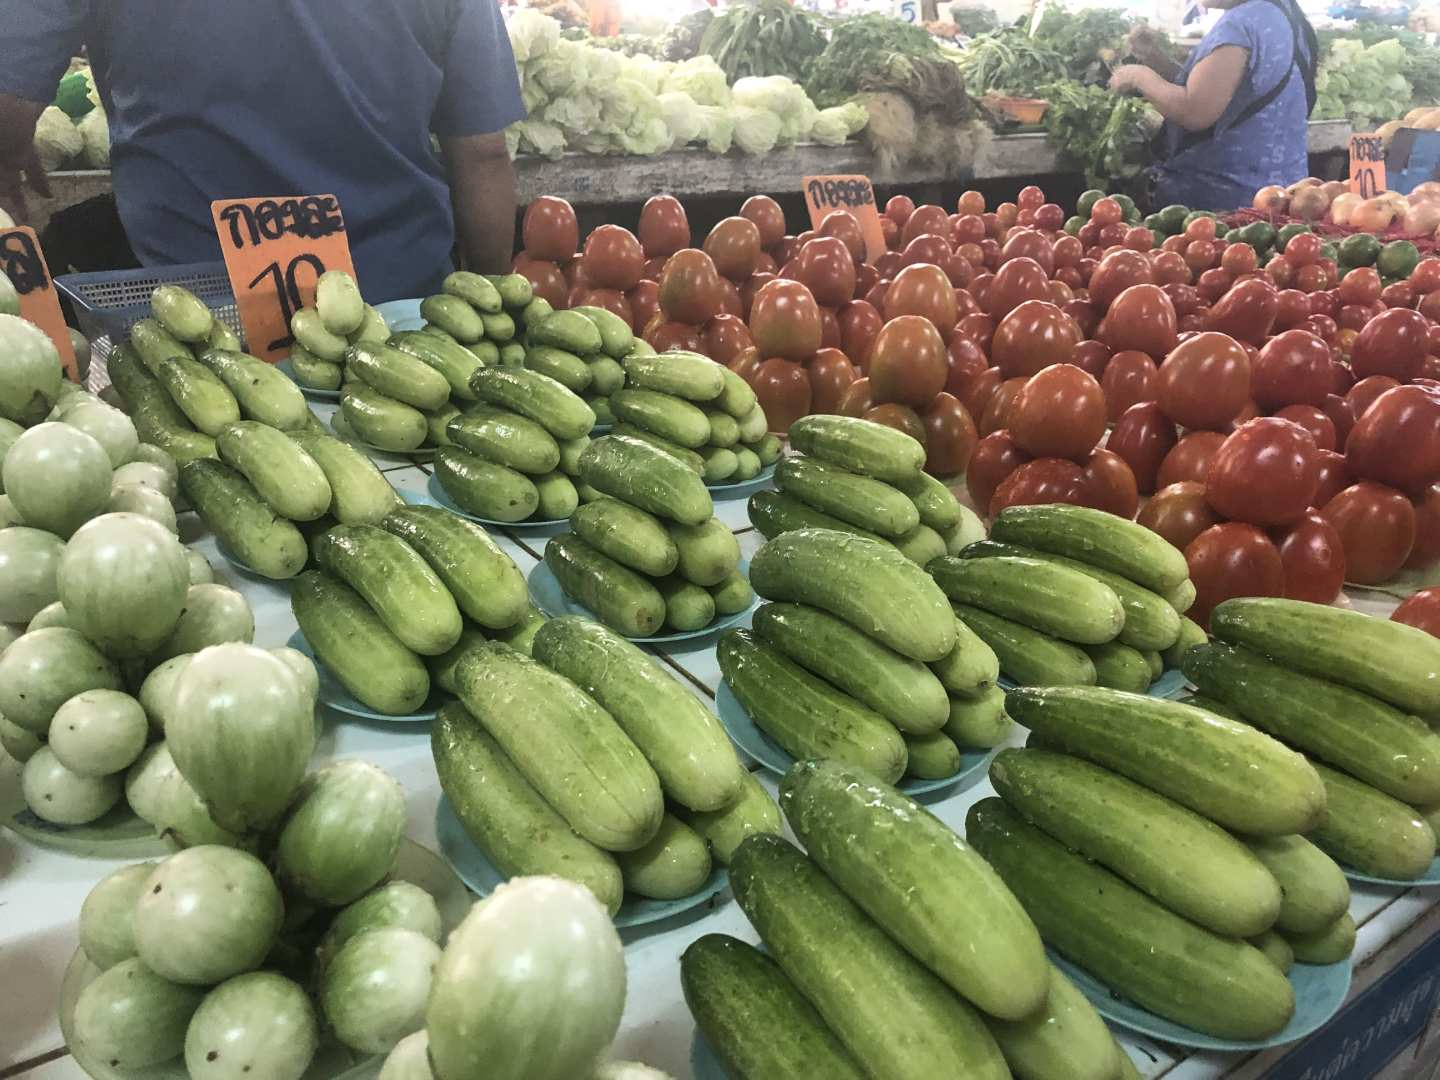 Thai Food Market Vegetables